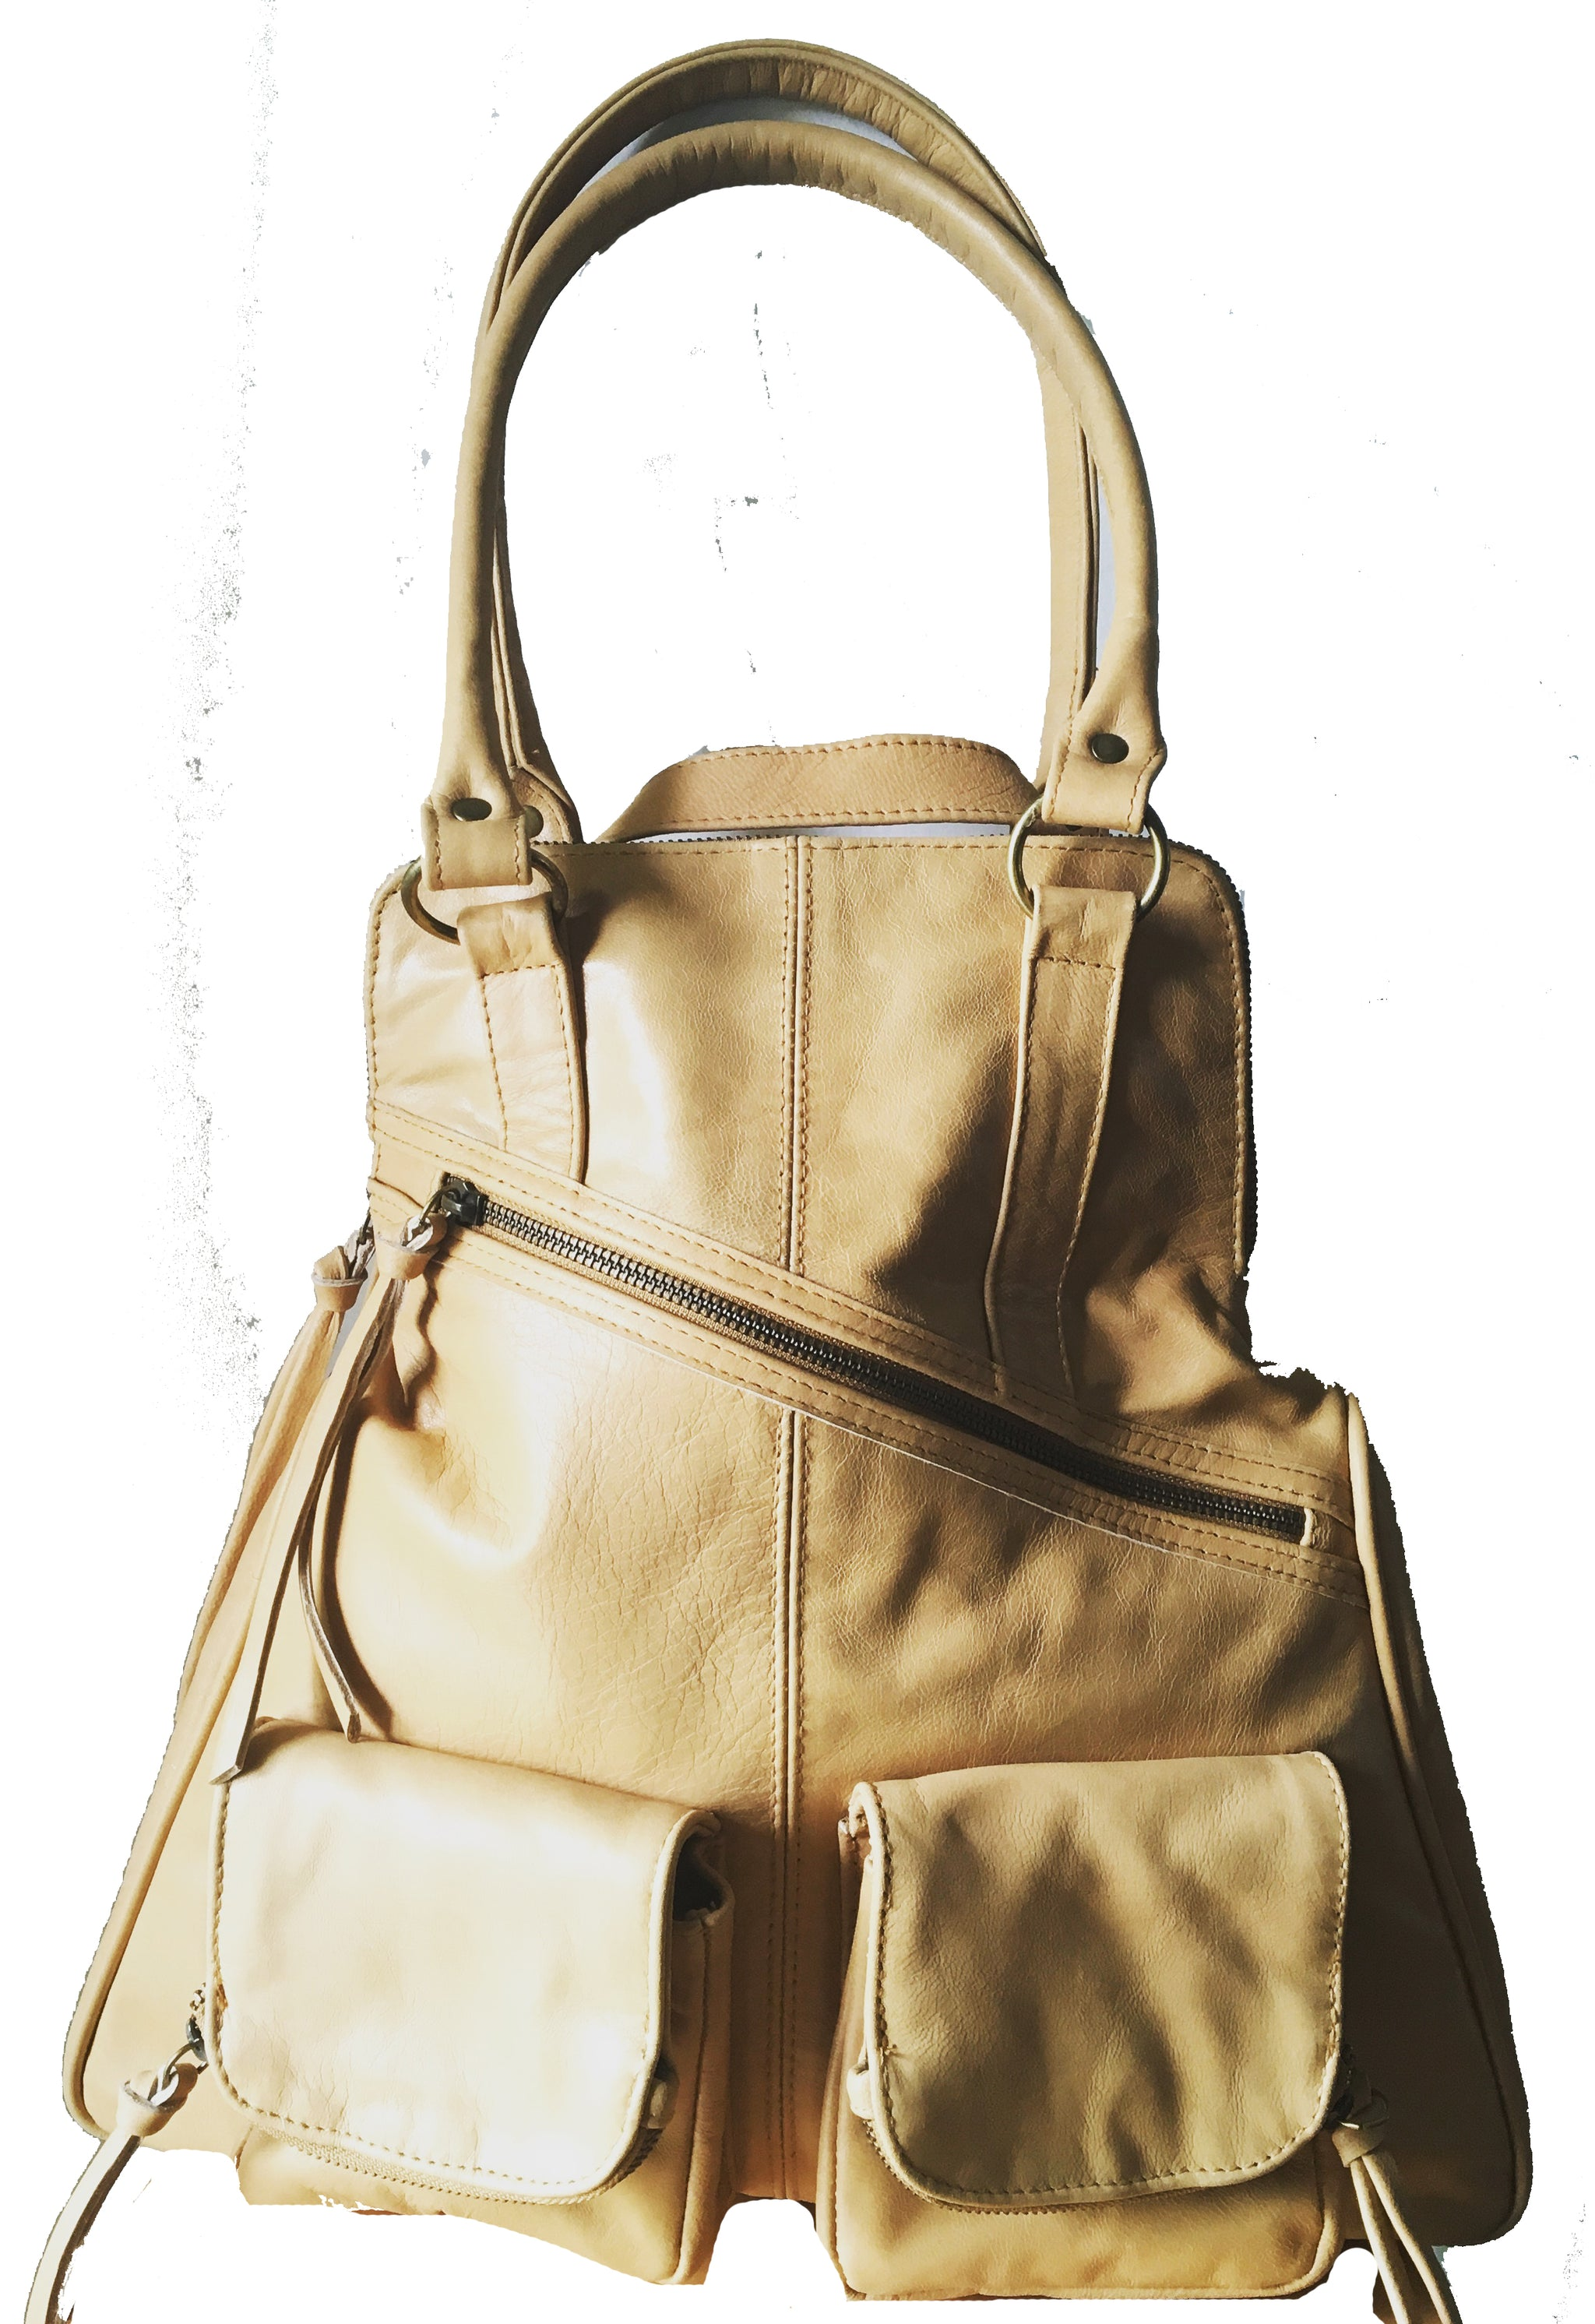 The Zoe - Tan leather shoulder tote and backpack in one.